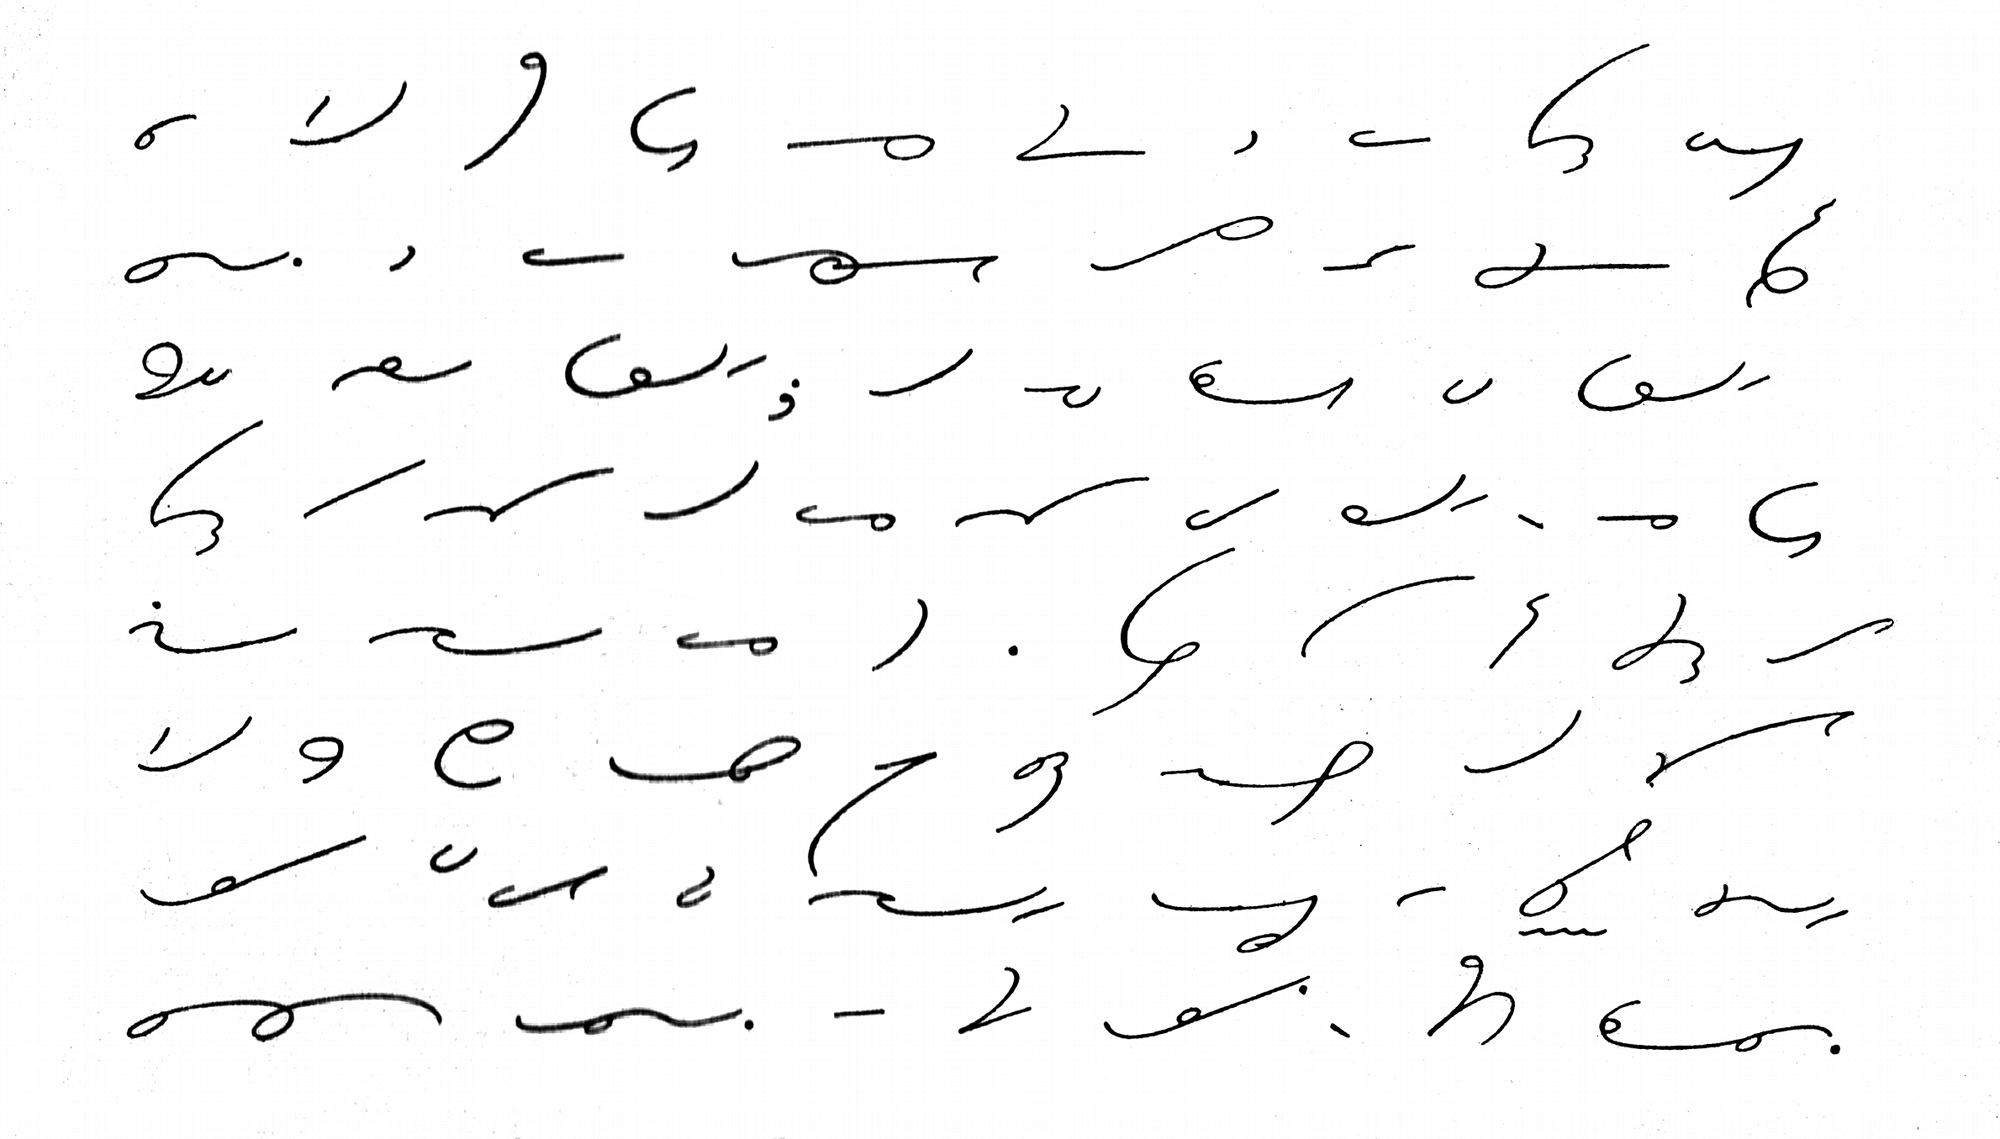 WHY I LOVE GREGG SHORTHAND